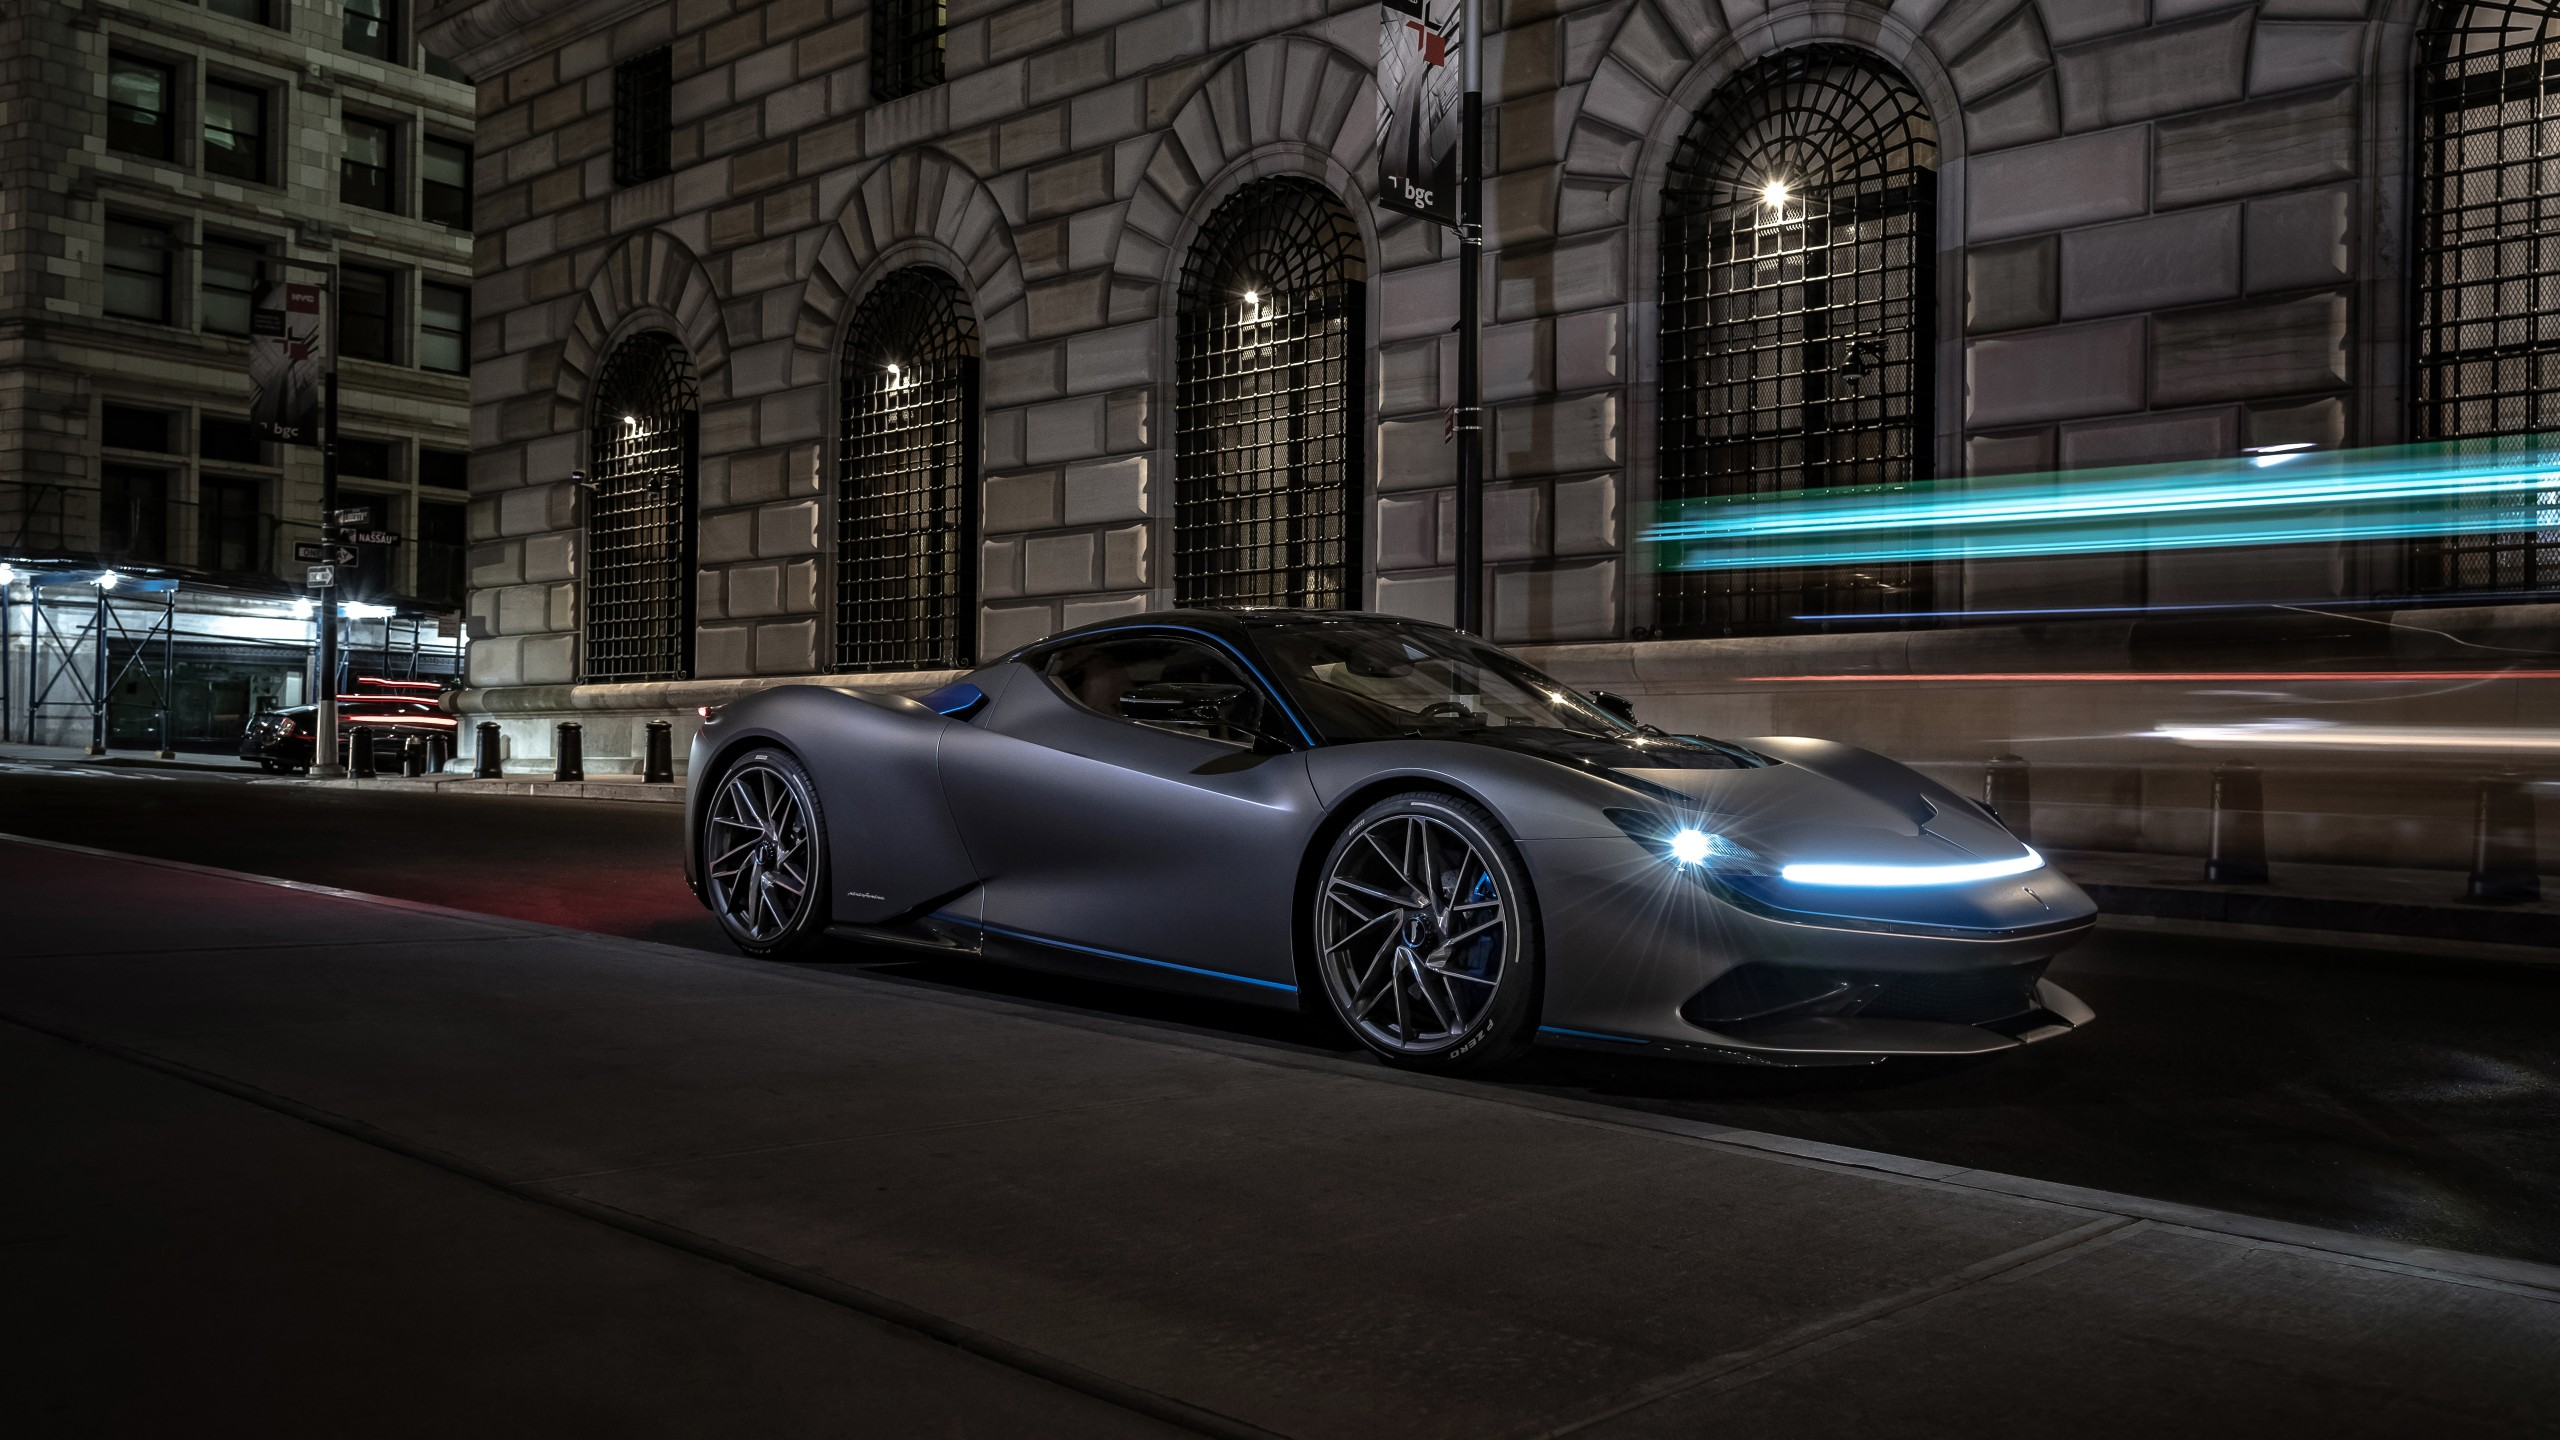 Pininfarina Battista 2019 5K Wallpaper